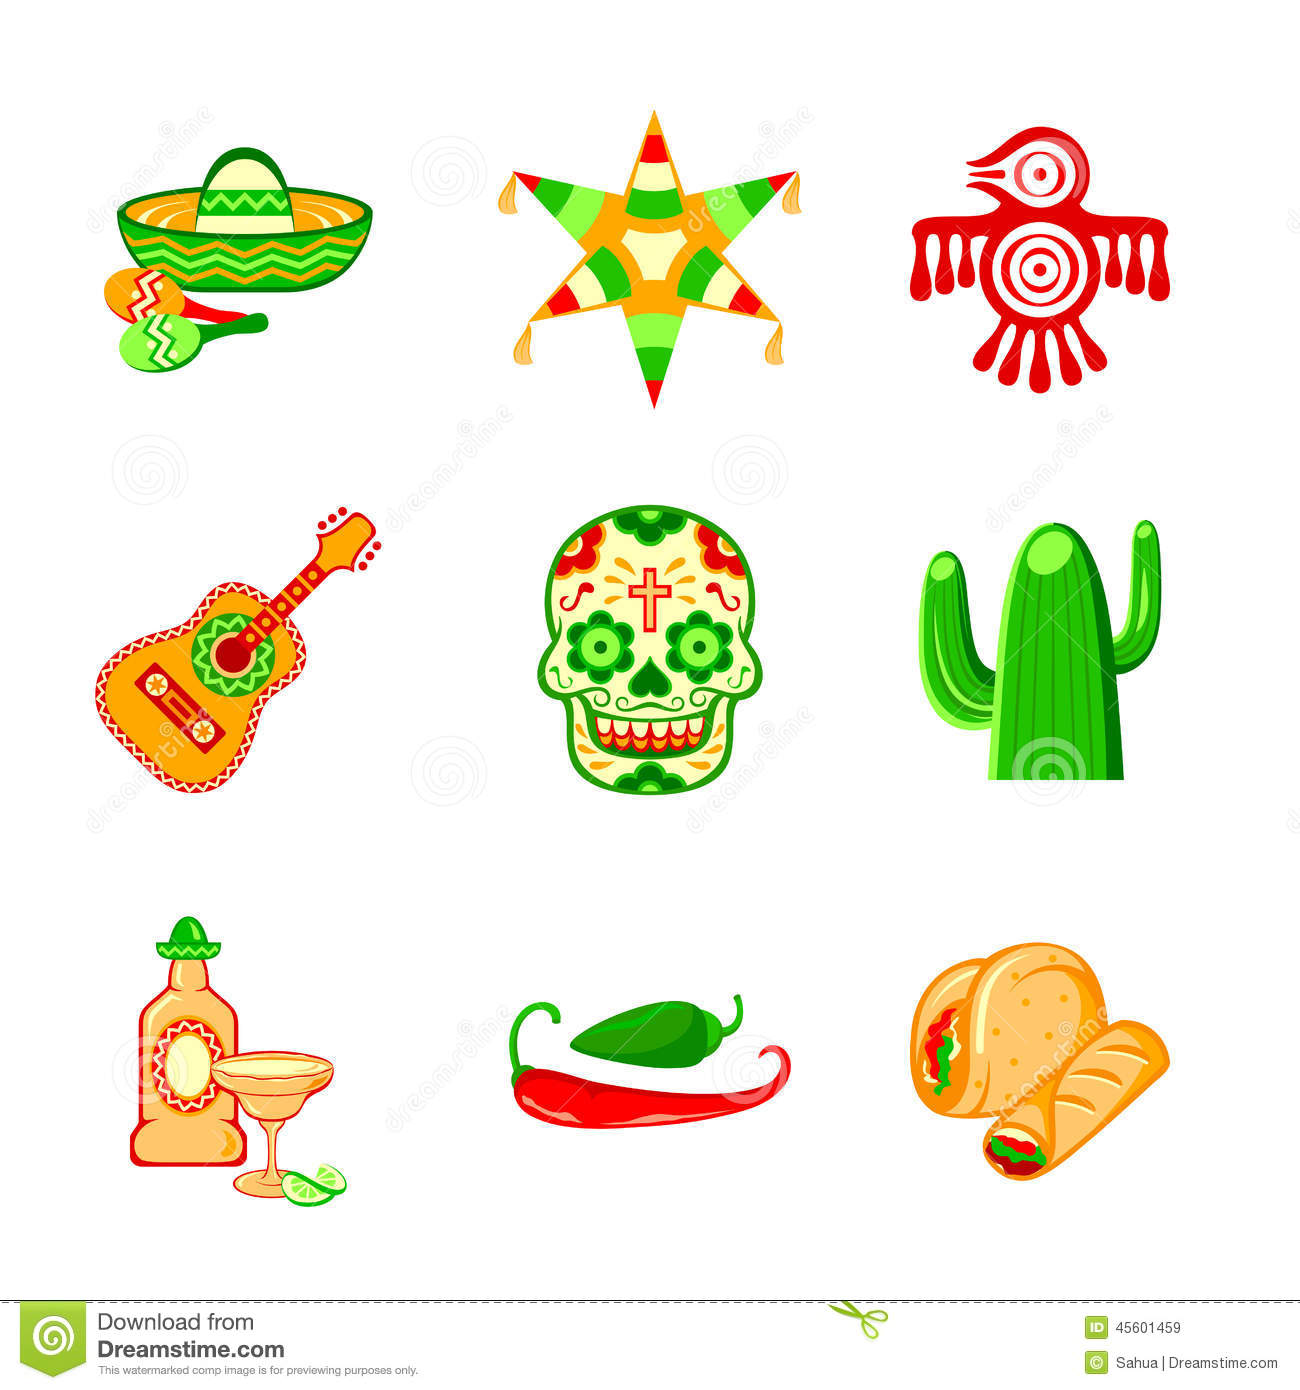 Colorful culture symbols, food and objects of Mexico.